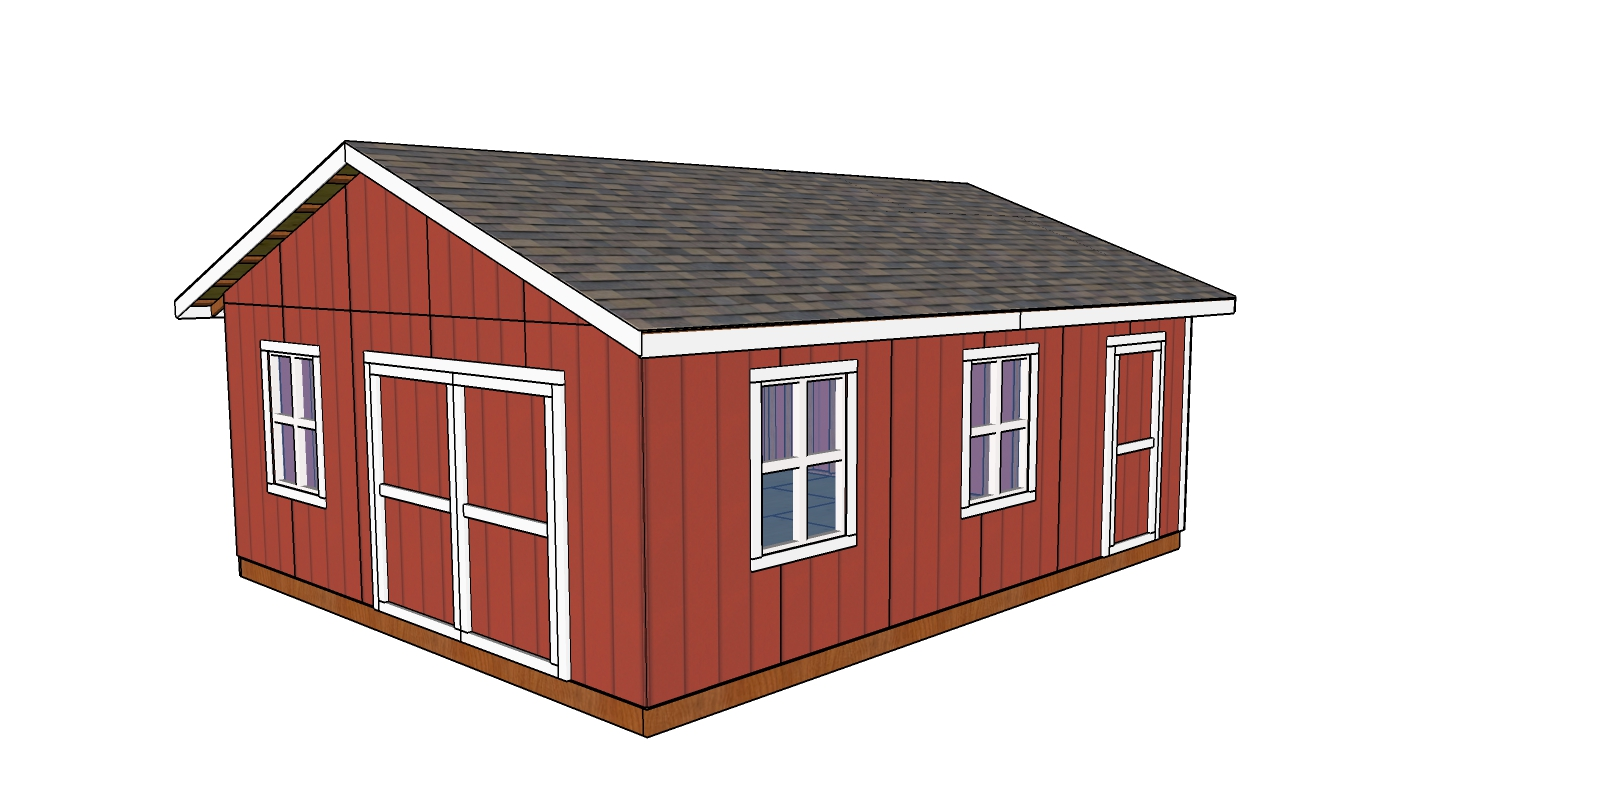 20x24 Shed Plans - Free PDF Download